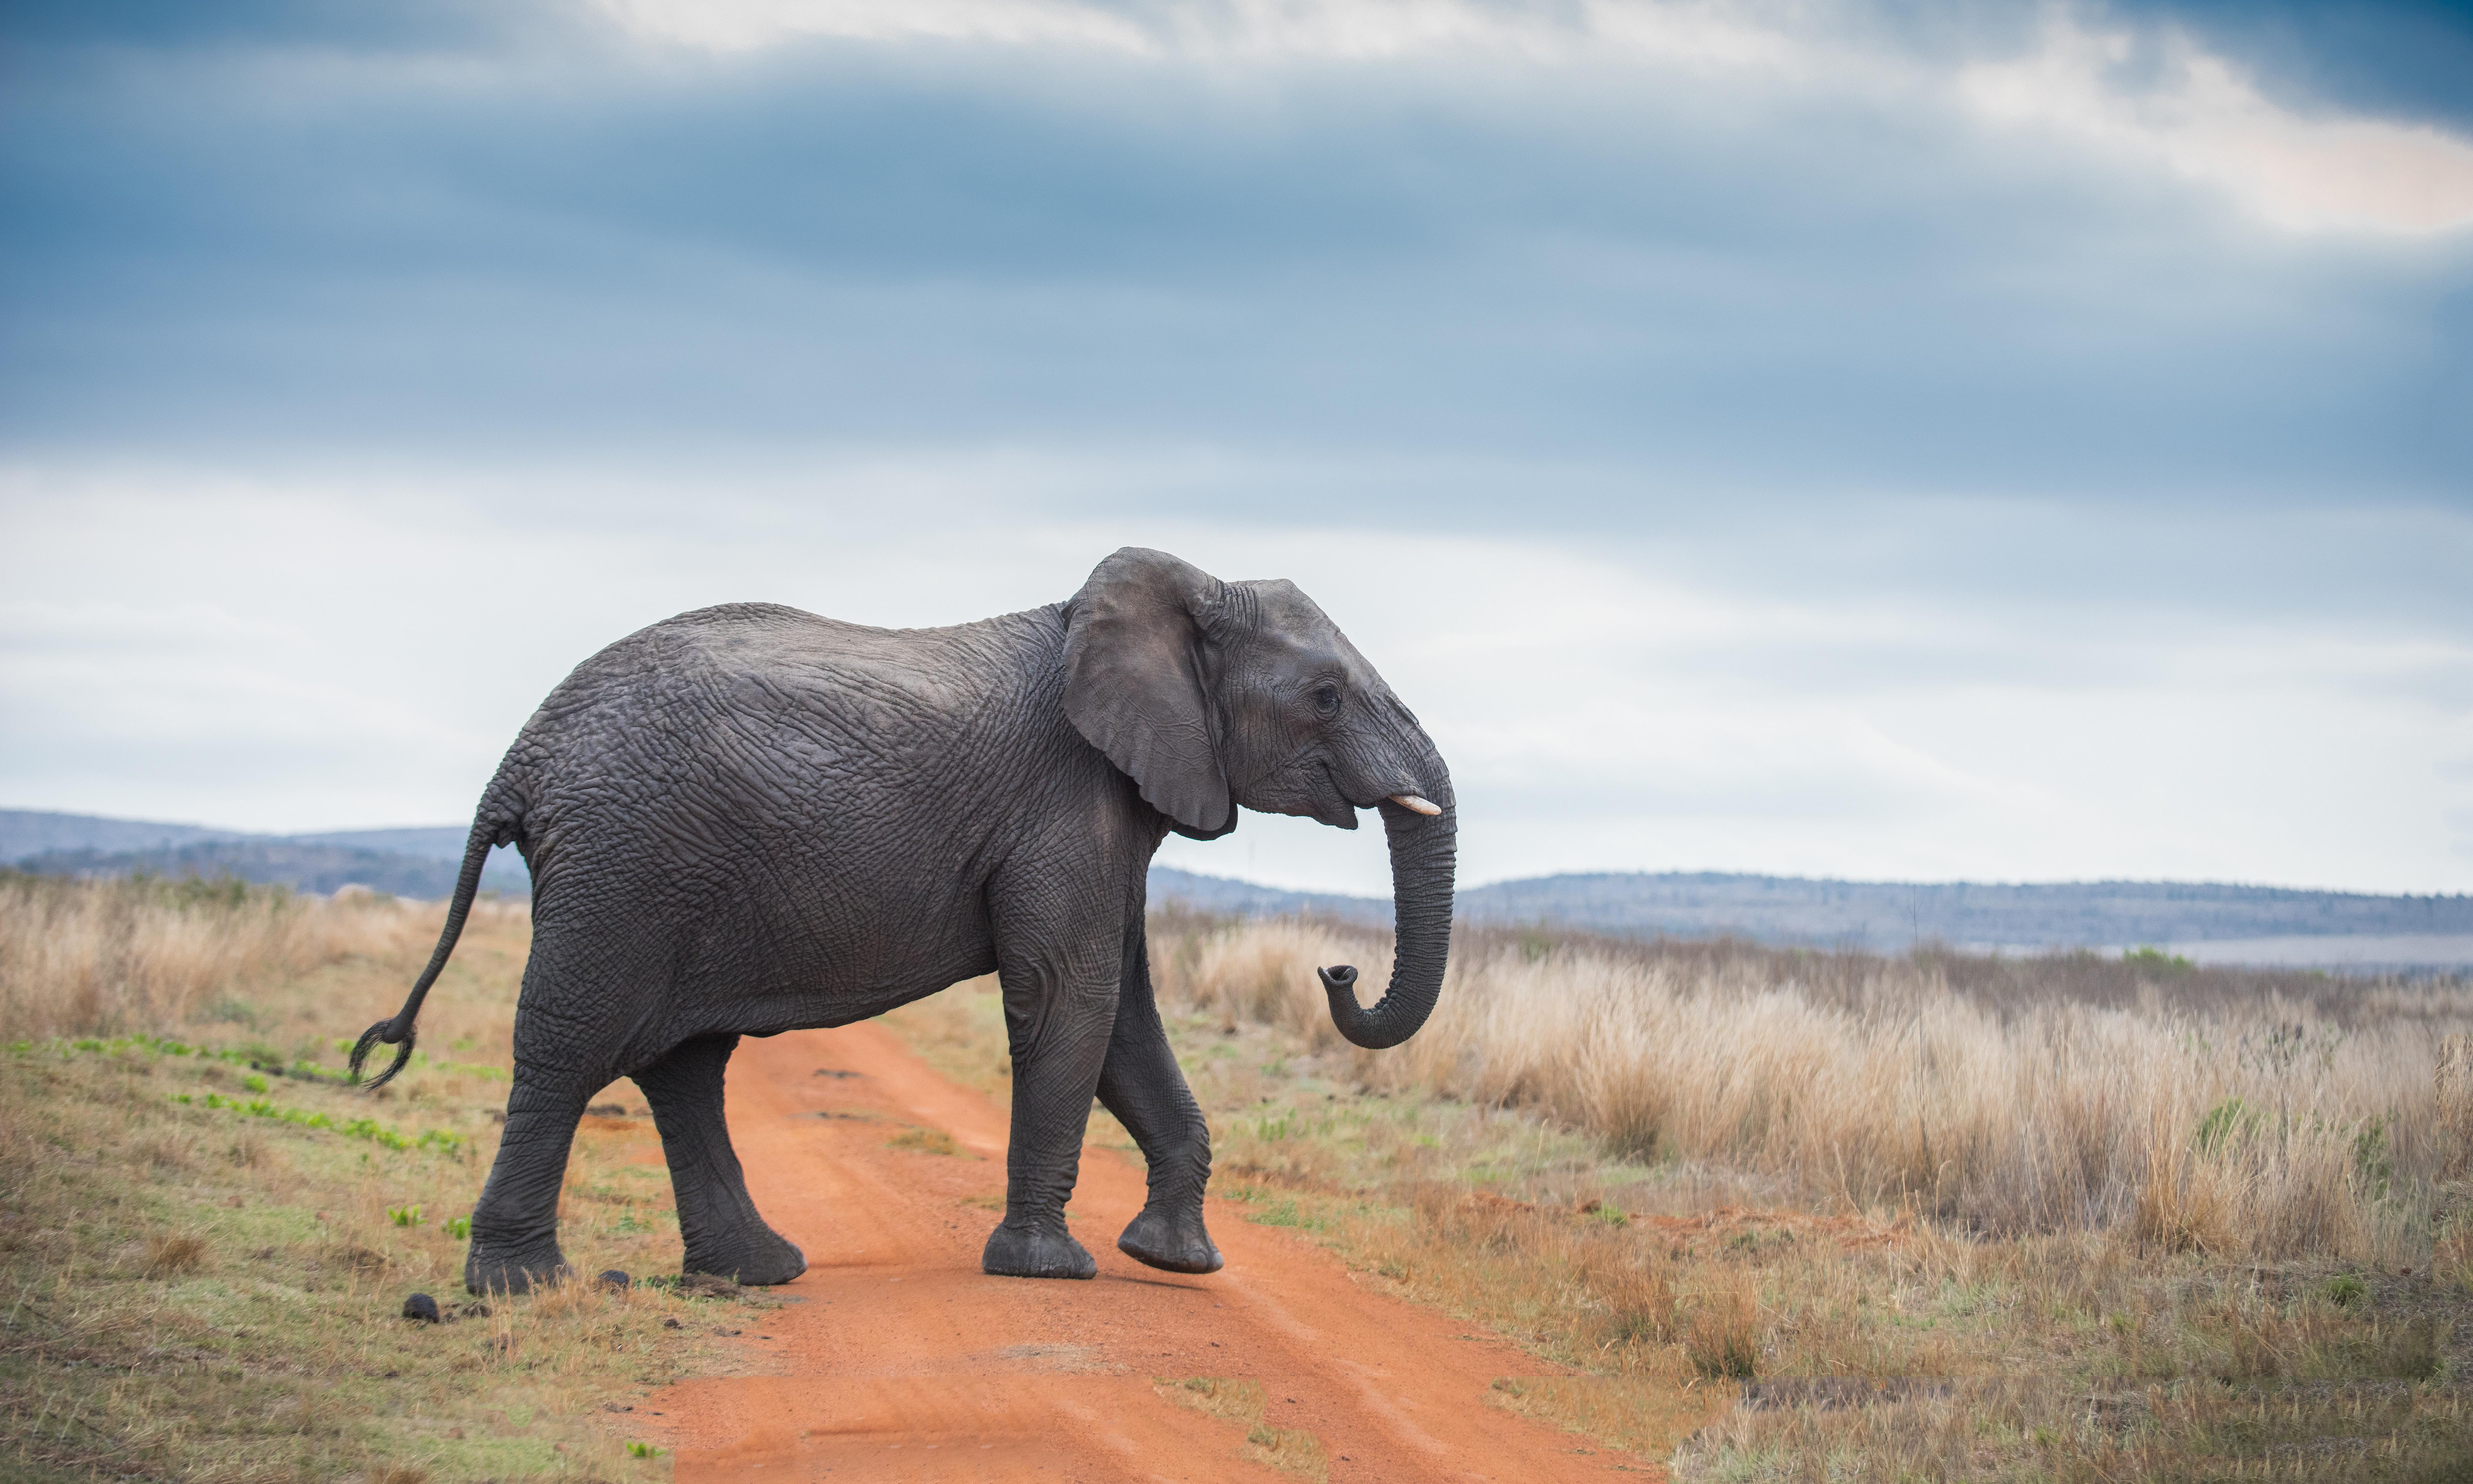 Surus was said to be whose last elephant? The Weekend quiz